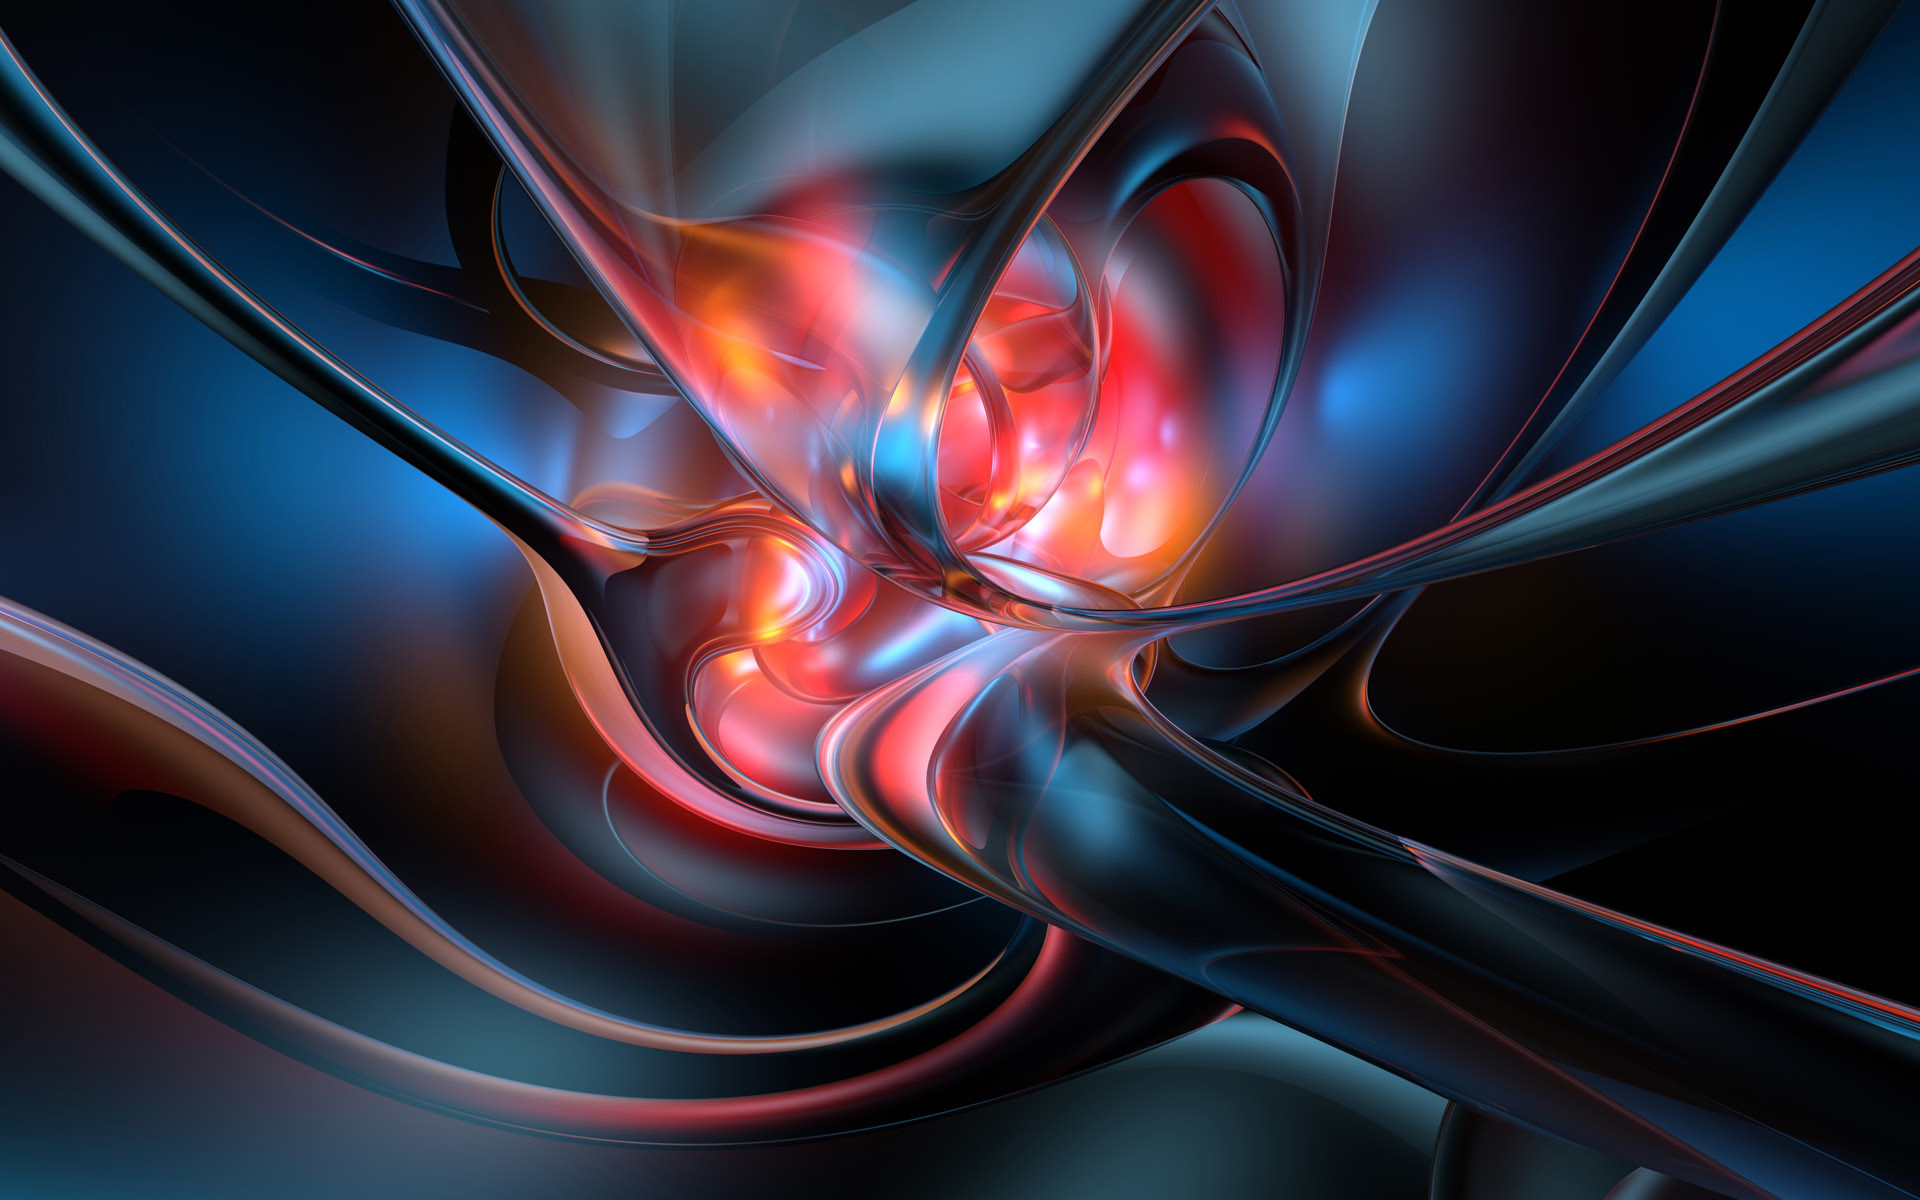 1920x1200 3D Wallpaper | Abstract 3D Wallpaper 3 - 3D Photography Desktop Wallpapers  ( 11235 .